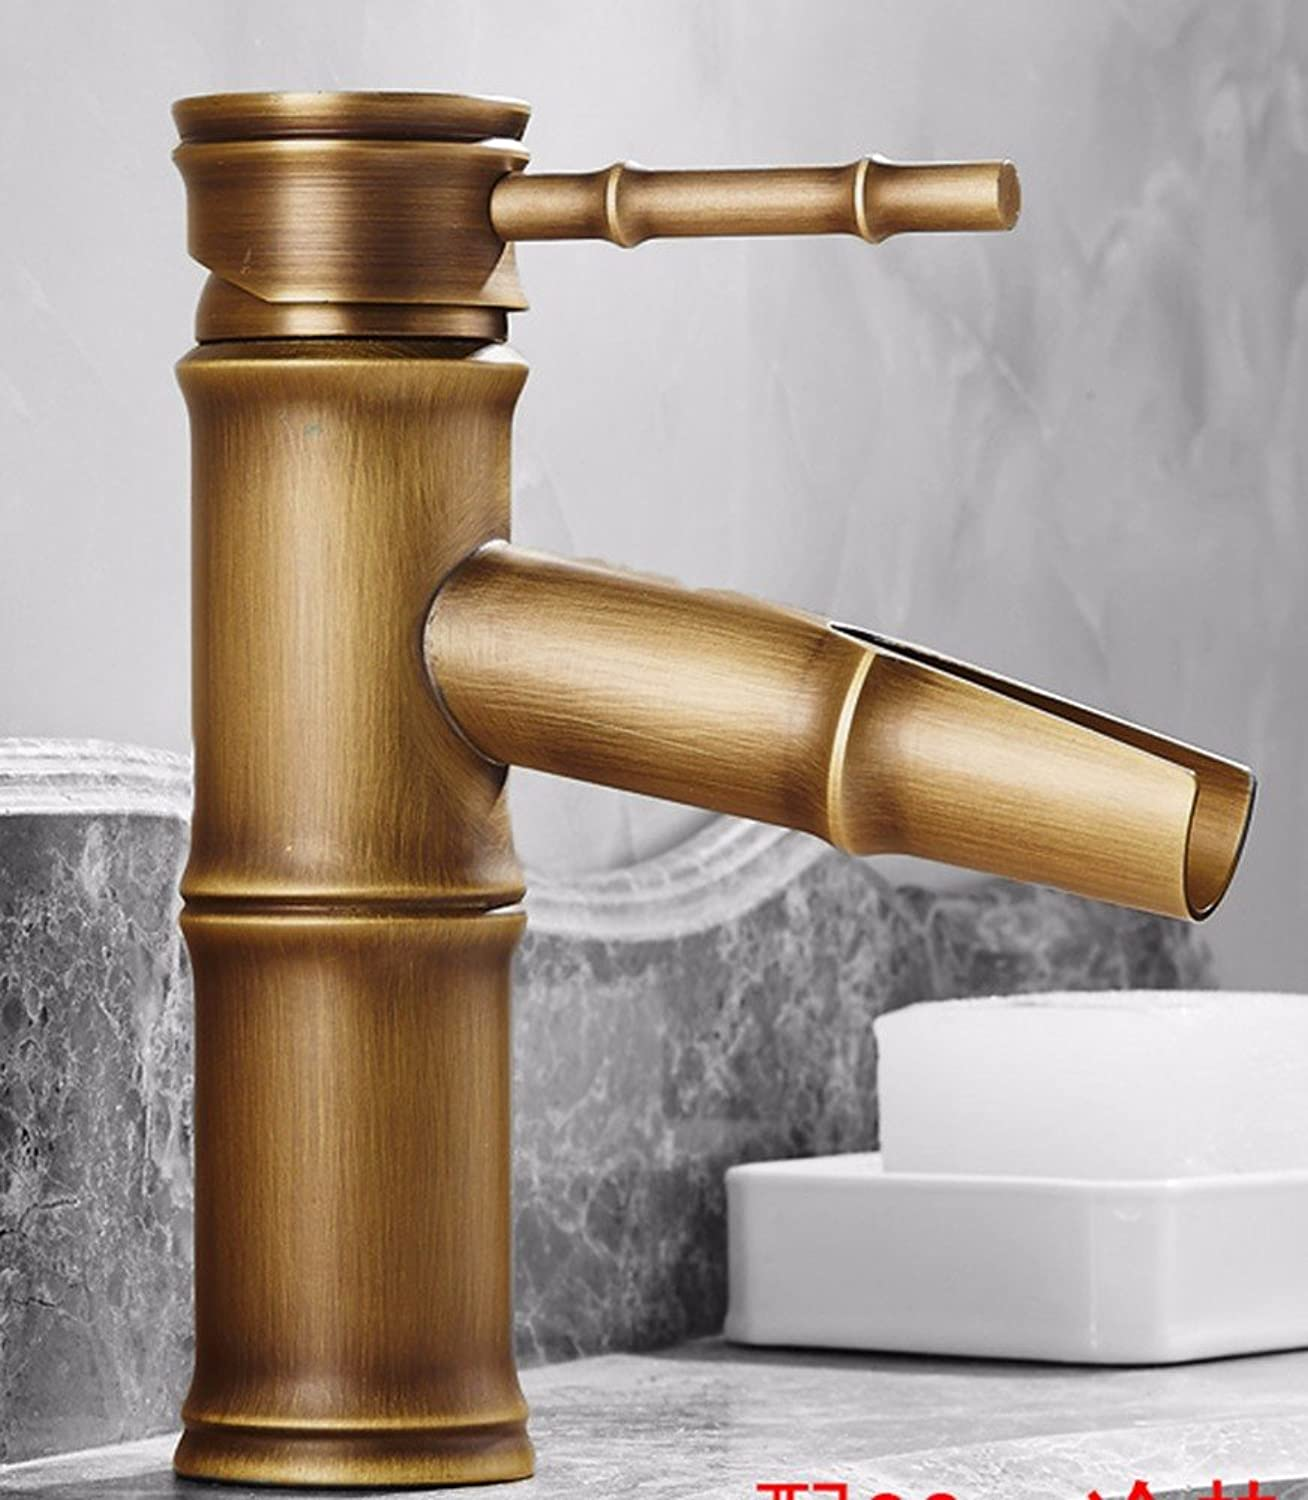 SCLOTHS Bathroom Basin Sink Mixer Tap Faucet Modern retro style copper single hole sink hot and cold